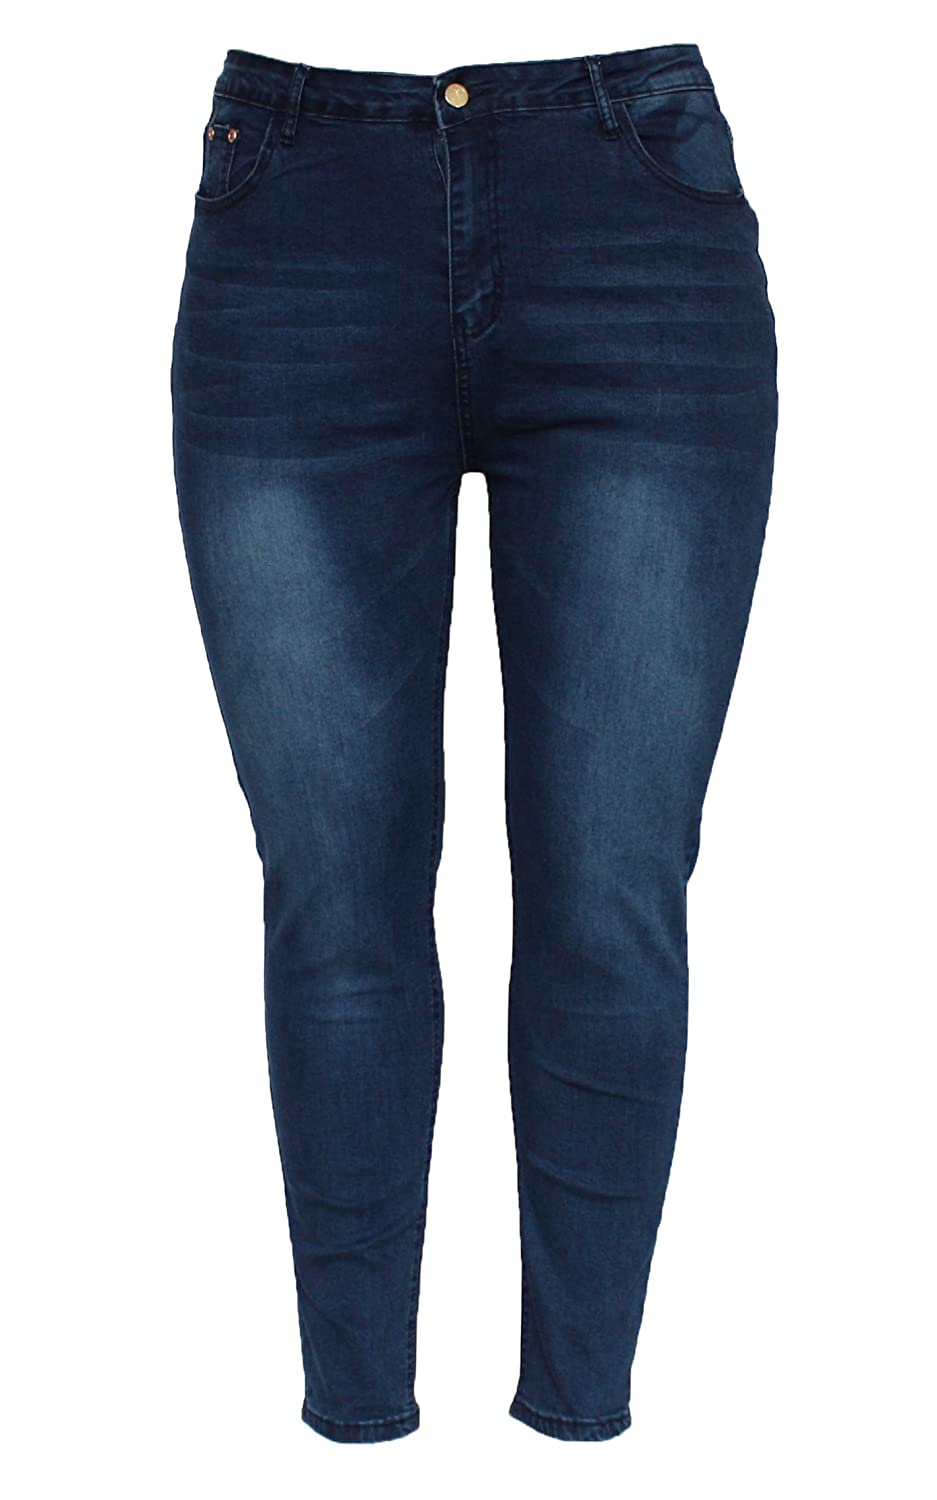 Barfly Fashion New Ladies Womens High Waisted Skinny Plus Size Casual Stretchy Slim Skinny Fit Denim Jeans UK Size 8-26